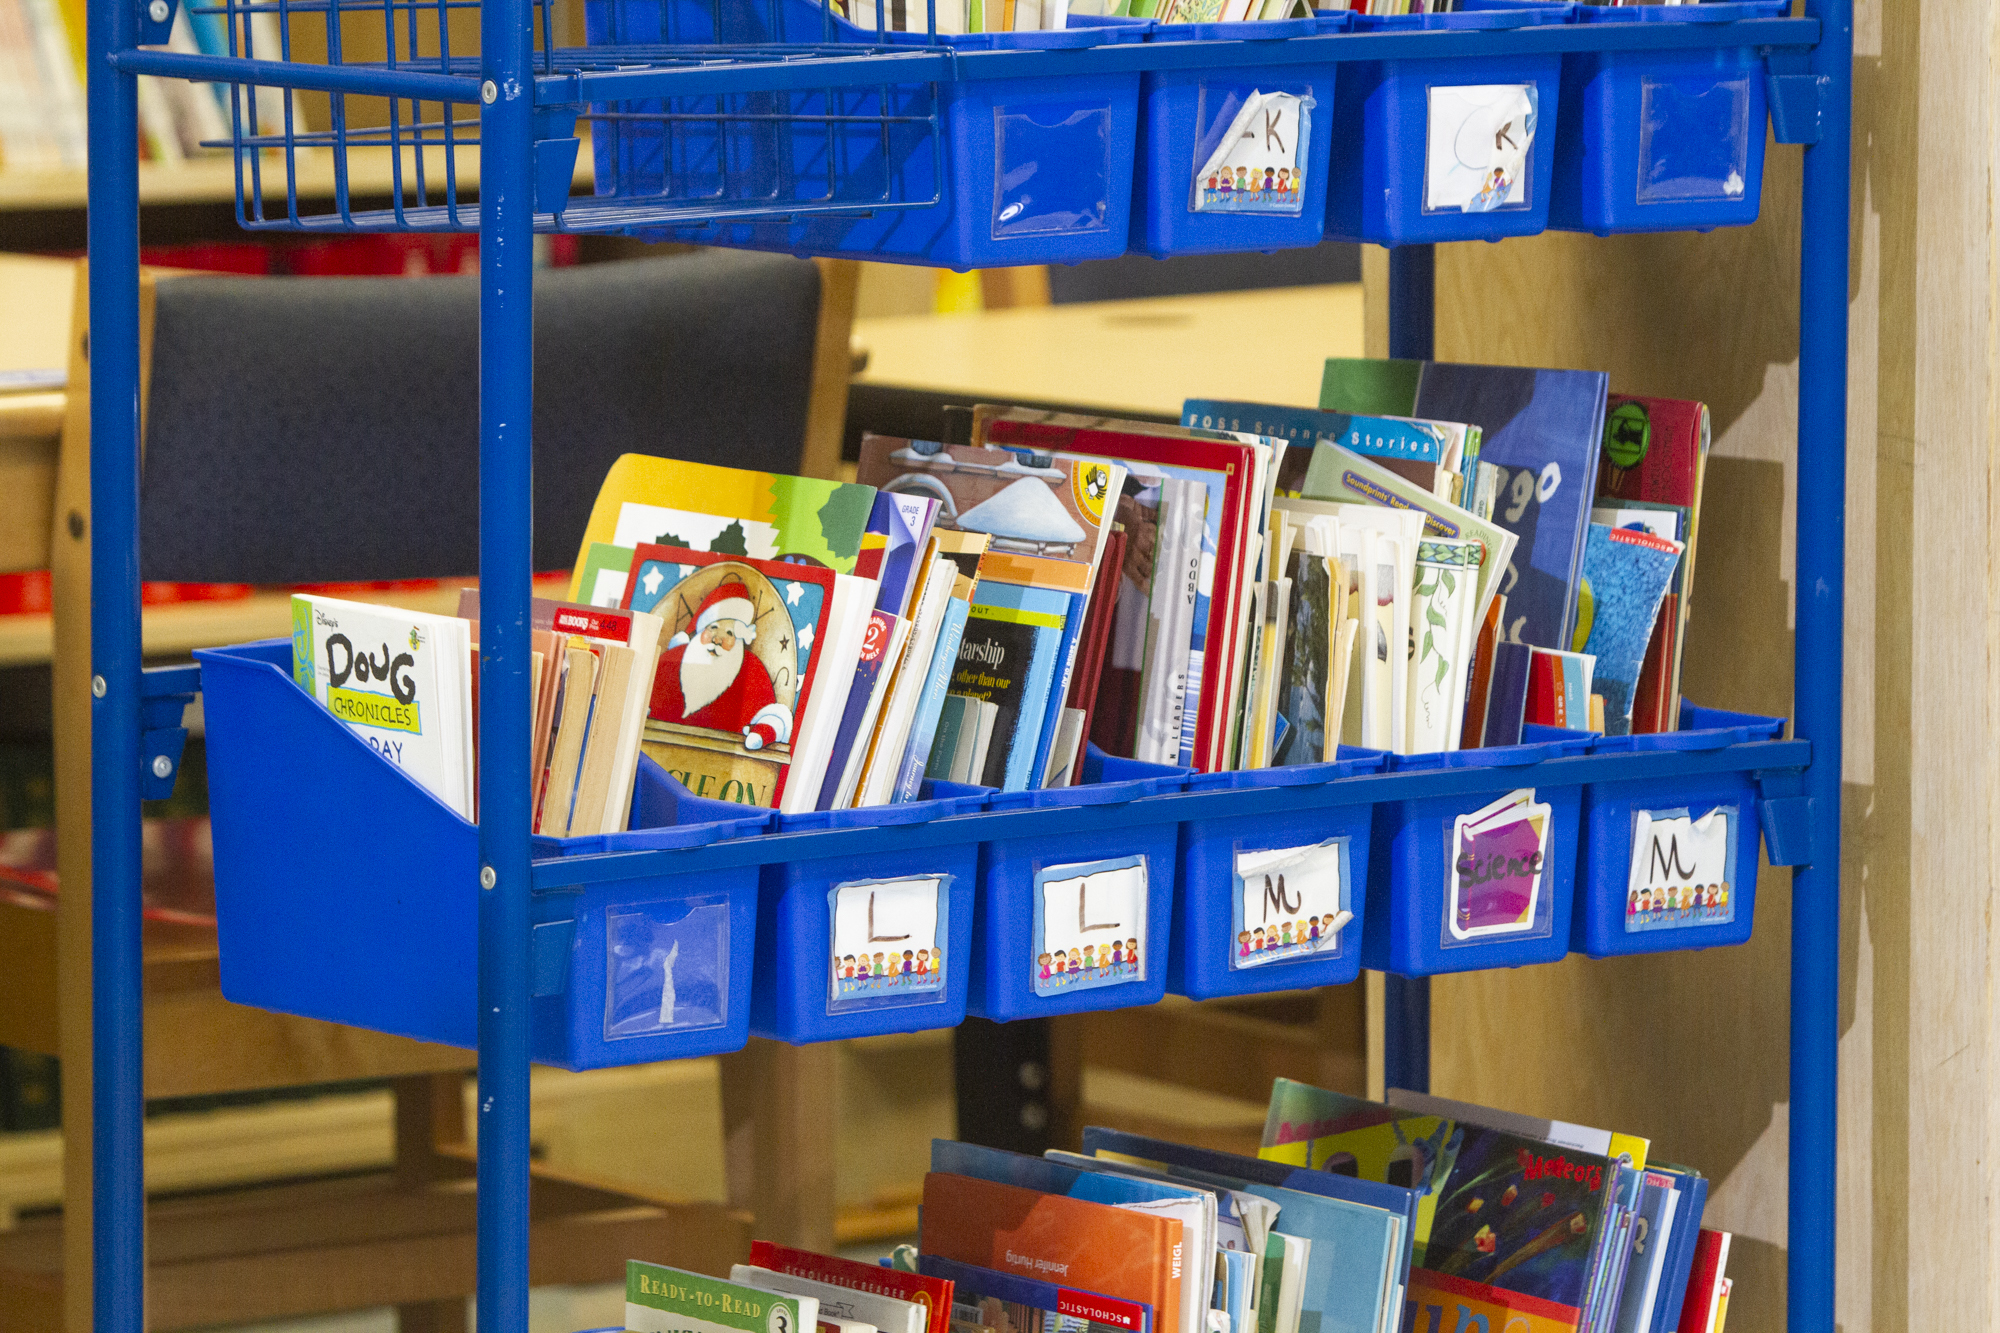 A blue cart of picture books organized alphabetically.